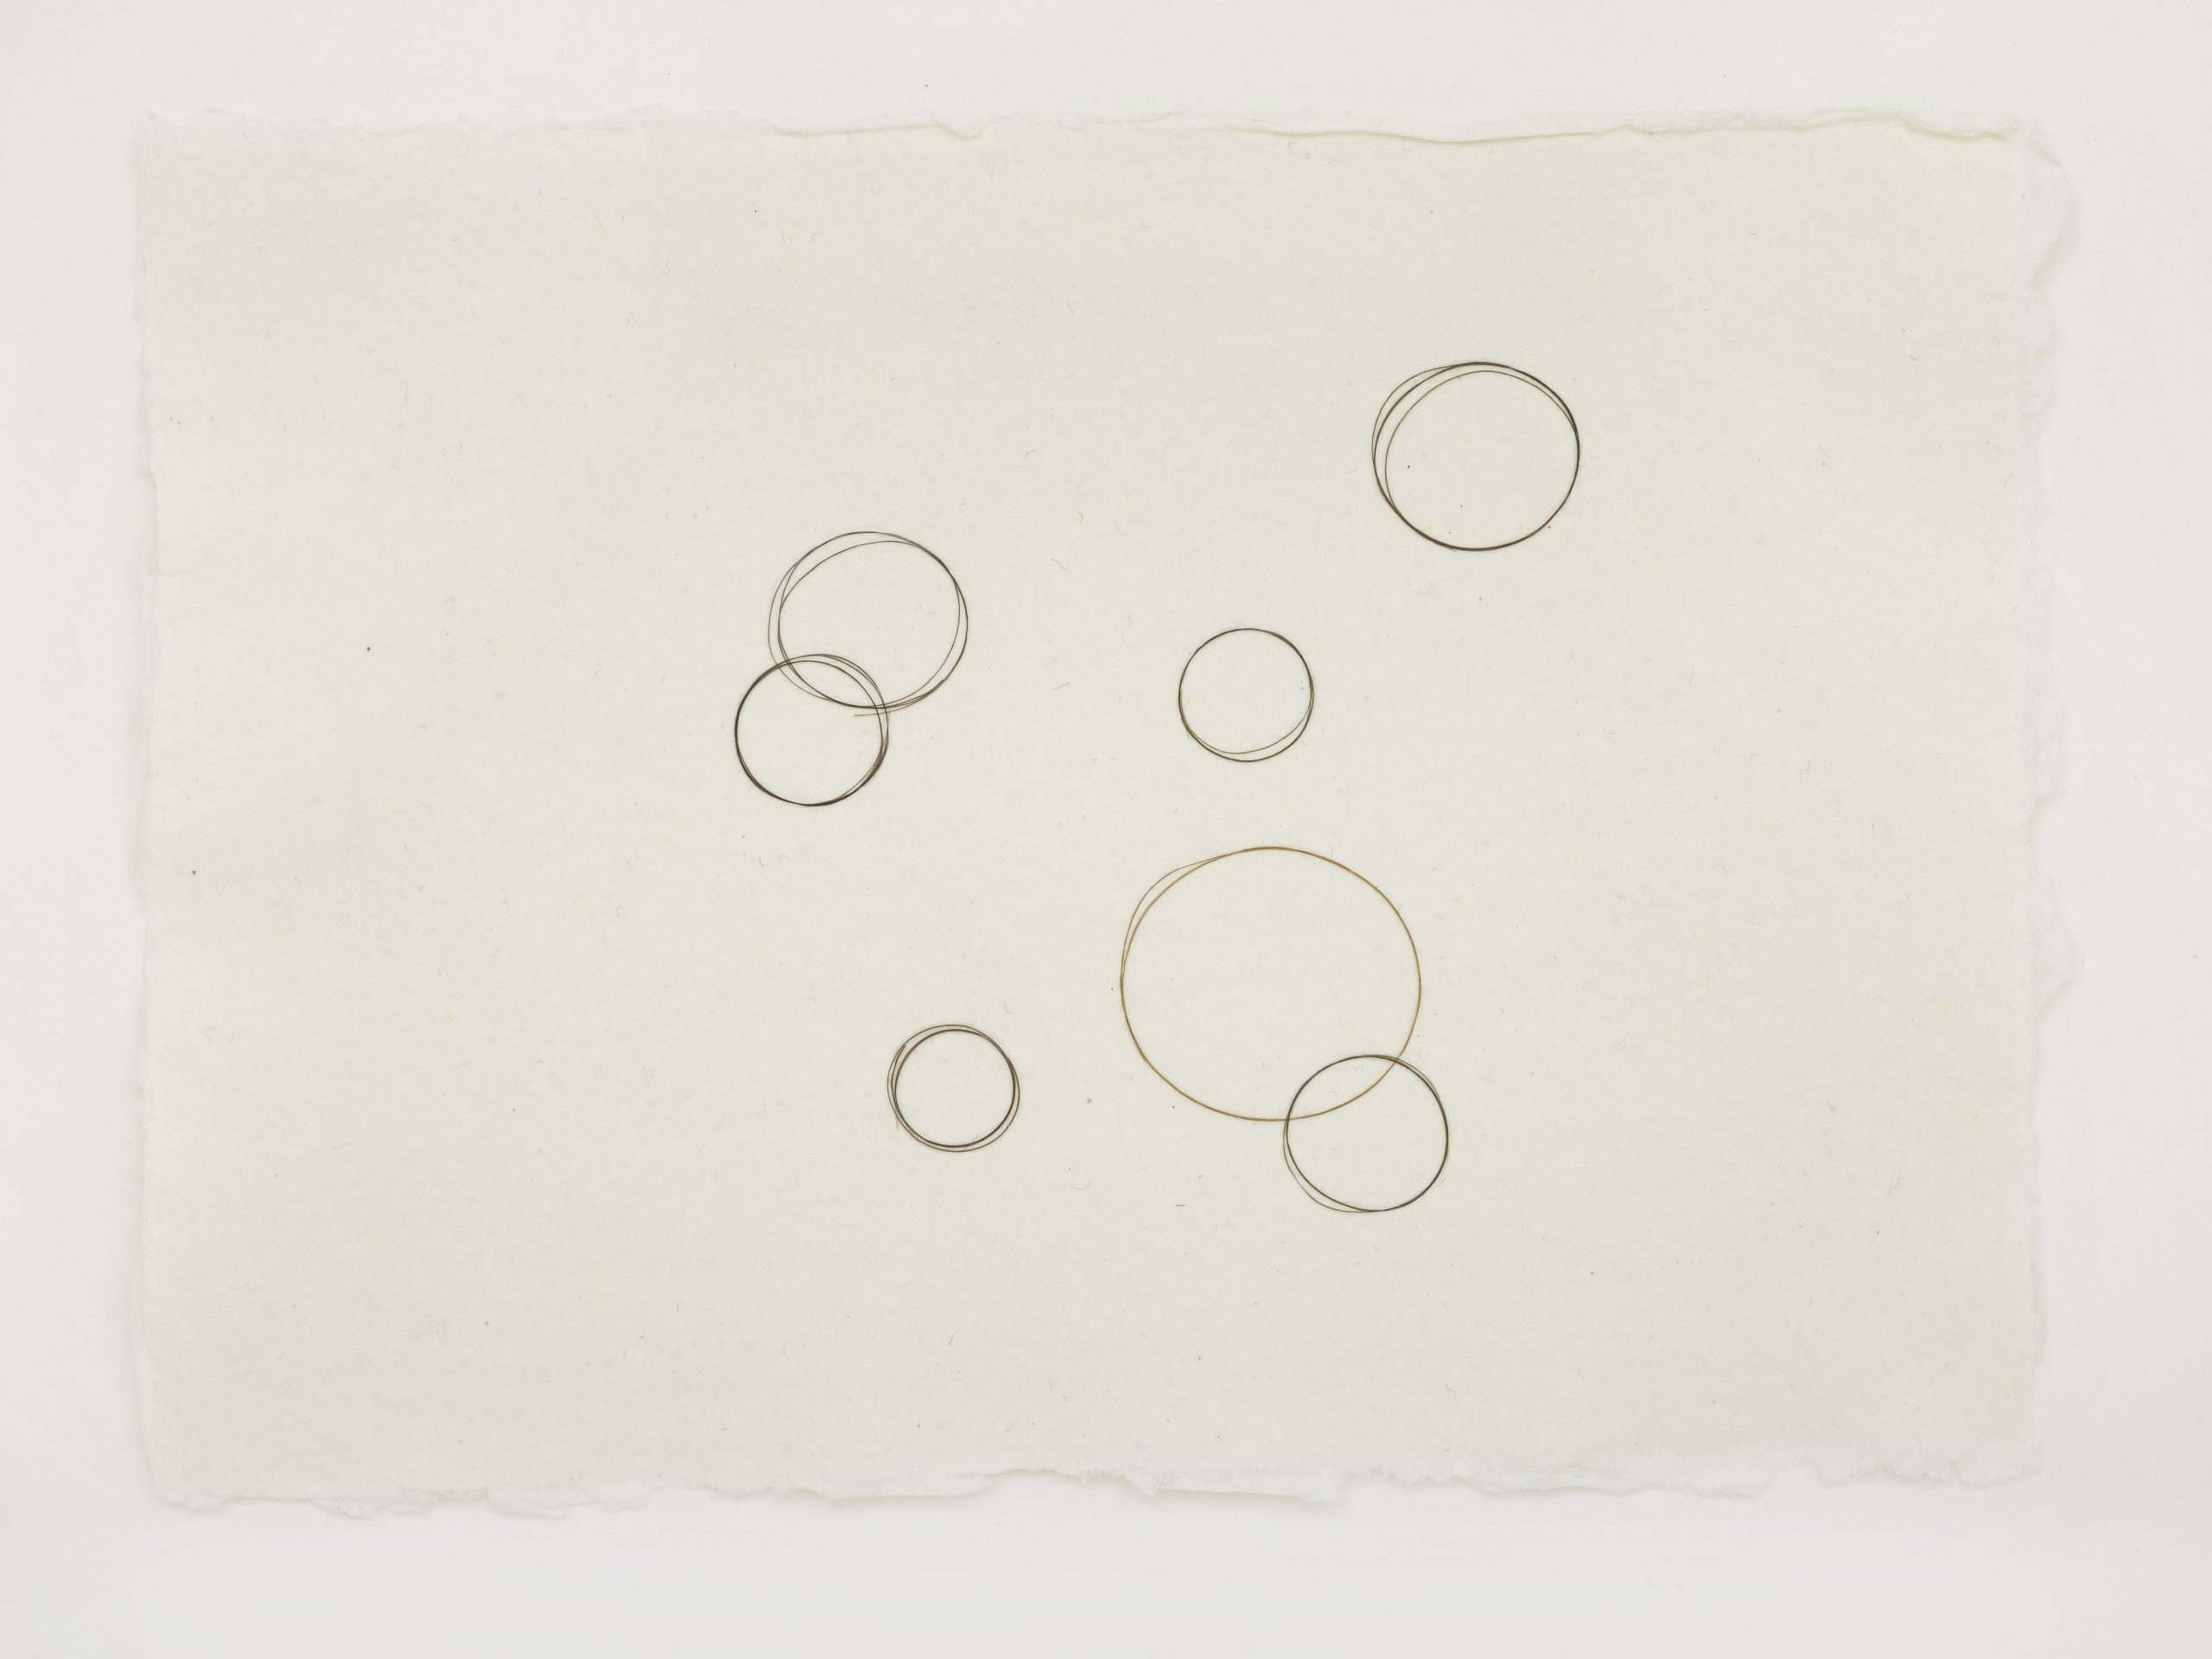 Work on paper by Mona Hatoum depicting circles